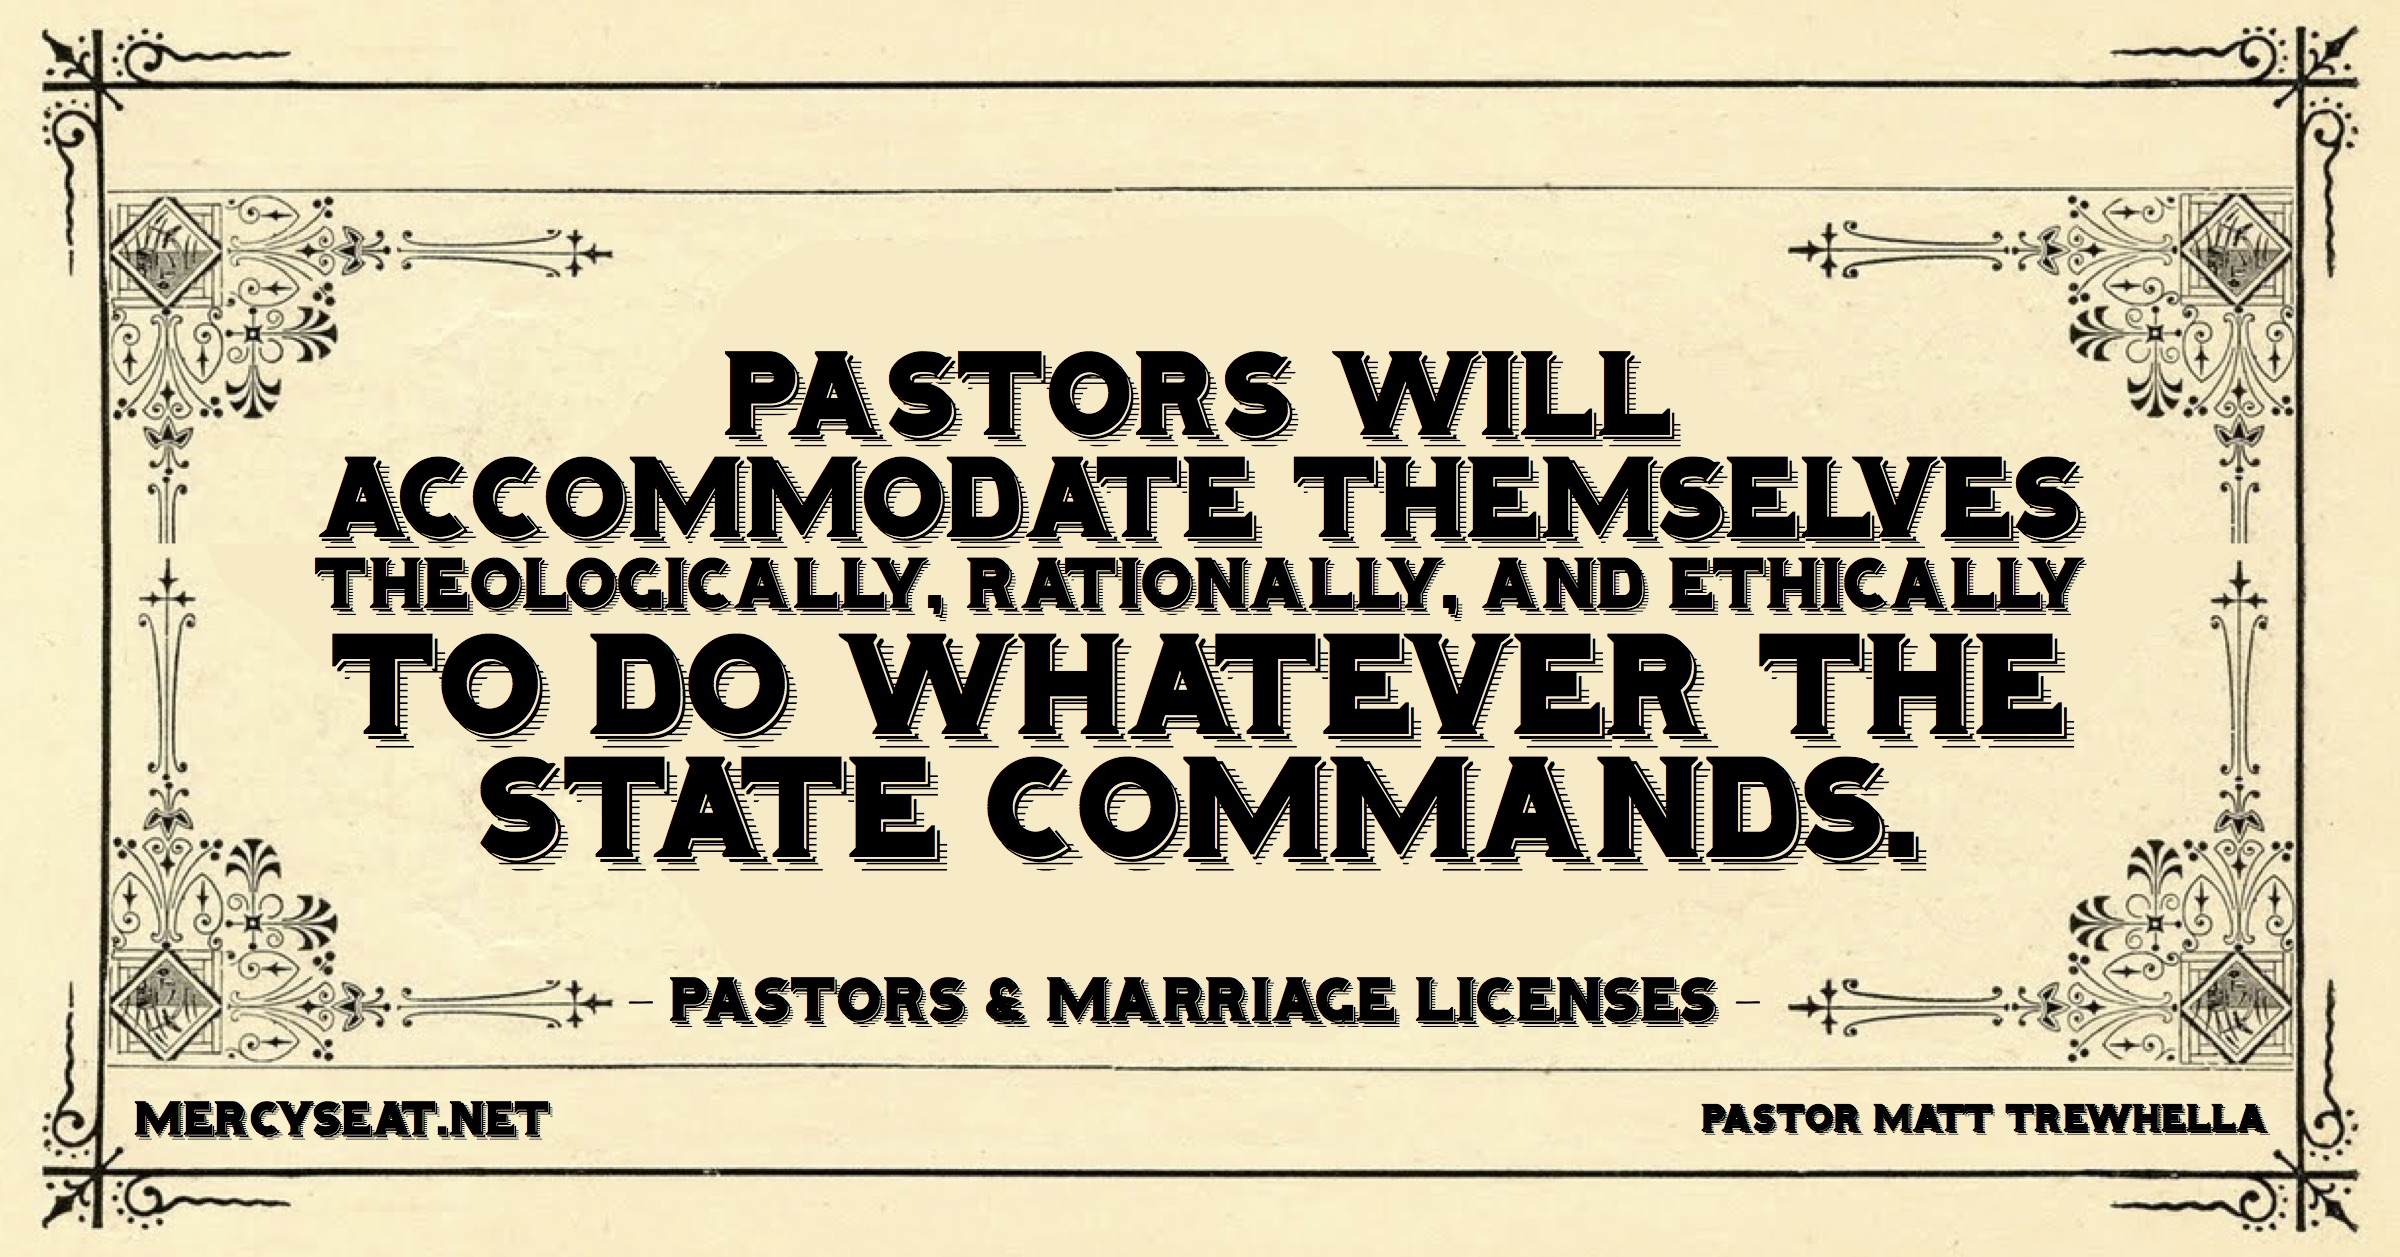 Pastors and marriage licenses